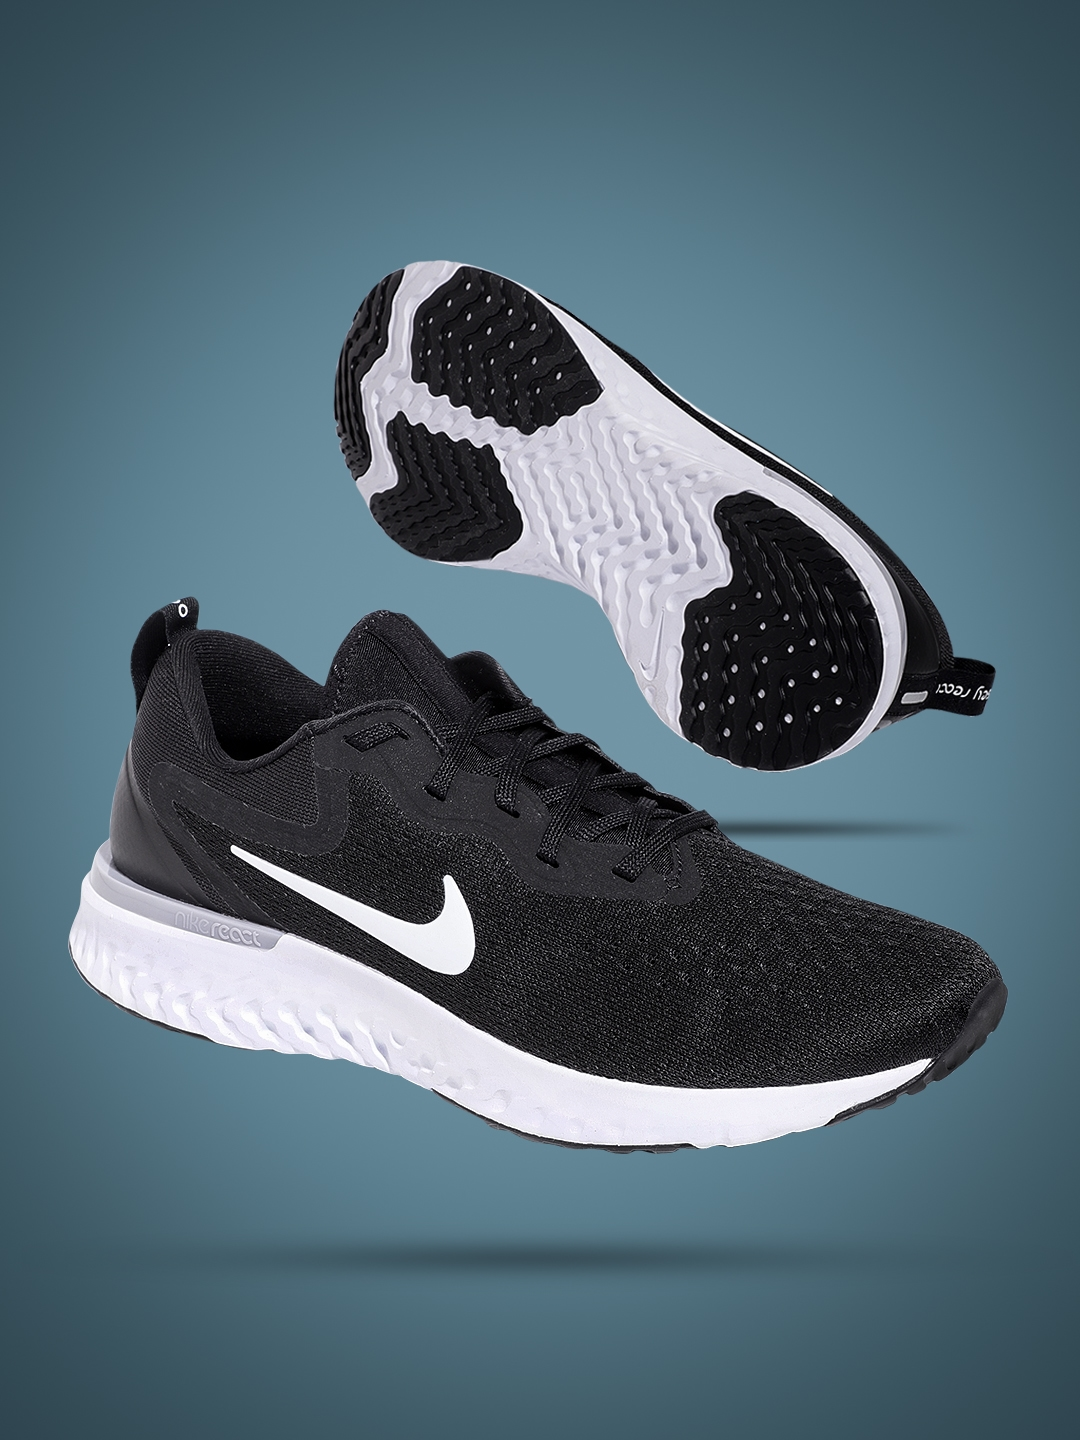 best sneakers f2c66 84227 Nike Women Black Odyssey React Running Shoes. Best Price  ...